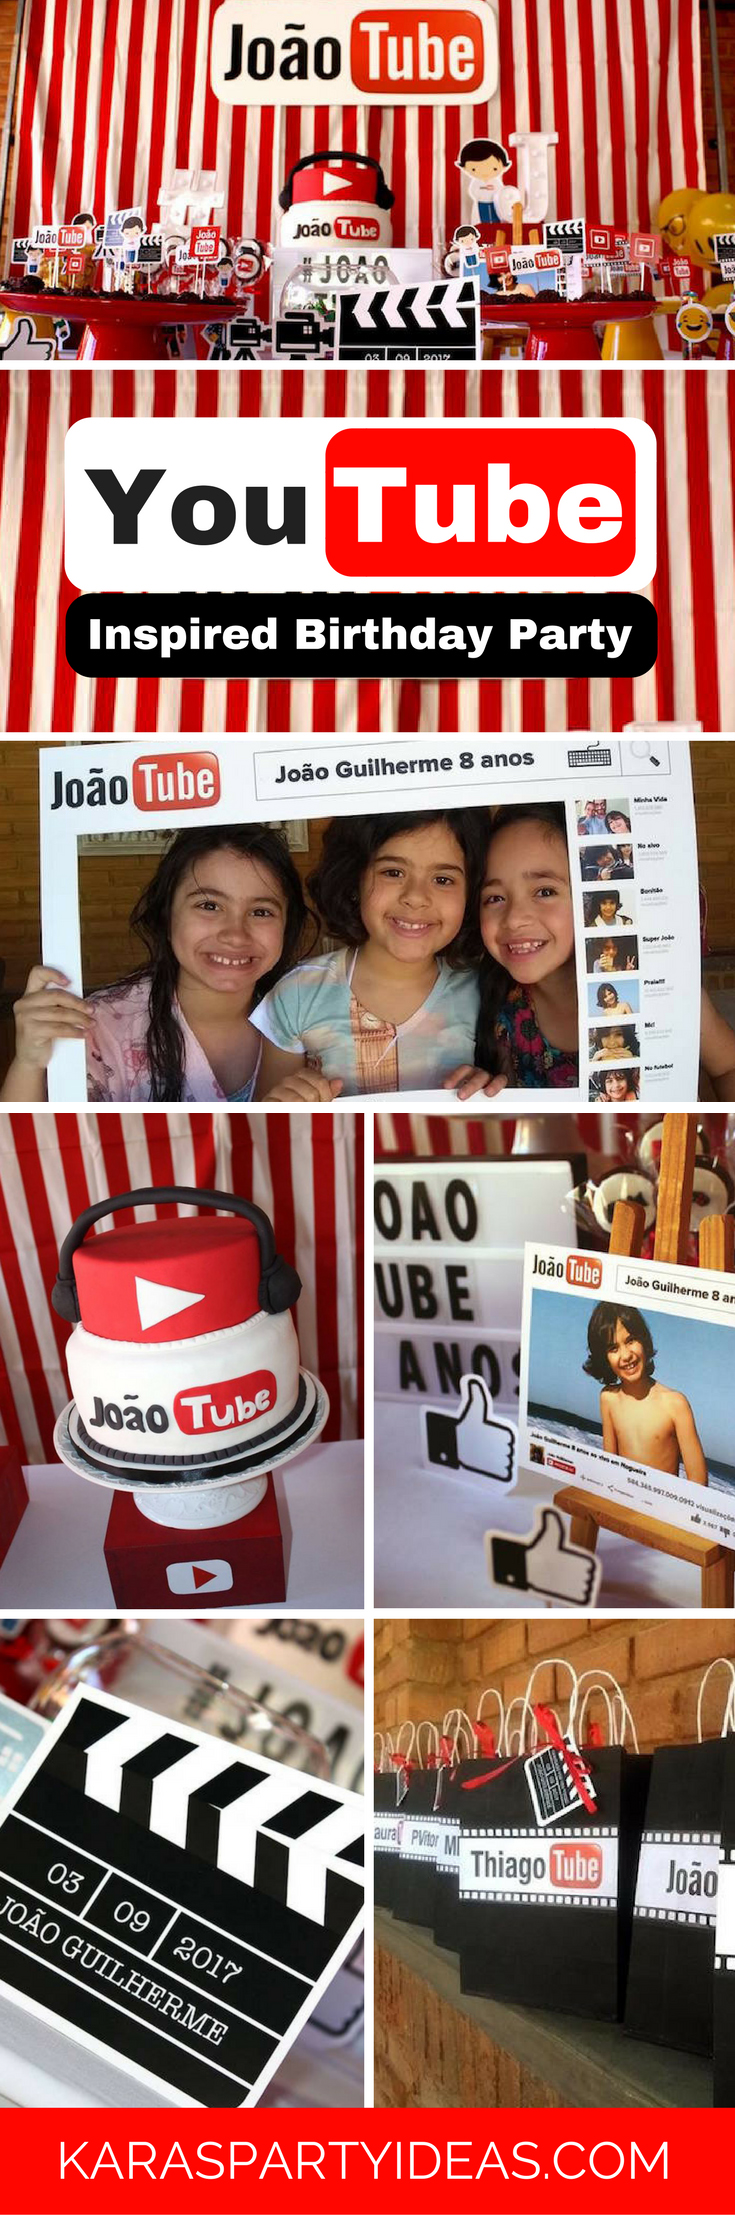 Youtube Themed Birthday Party via Kara's Party Ideas - KarasPartyIdeas.com